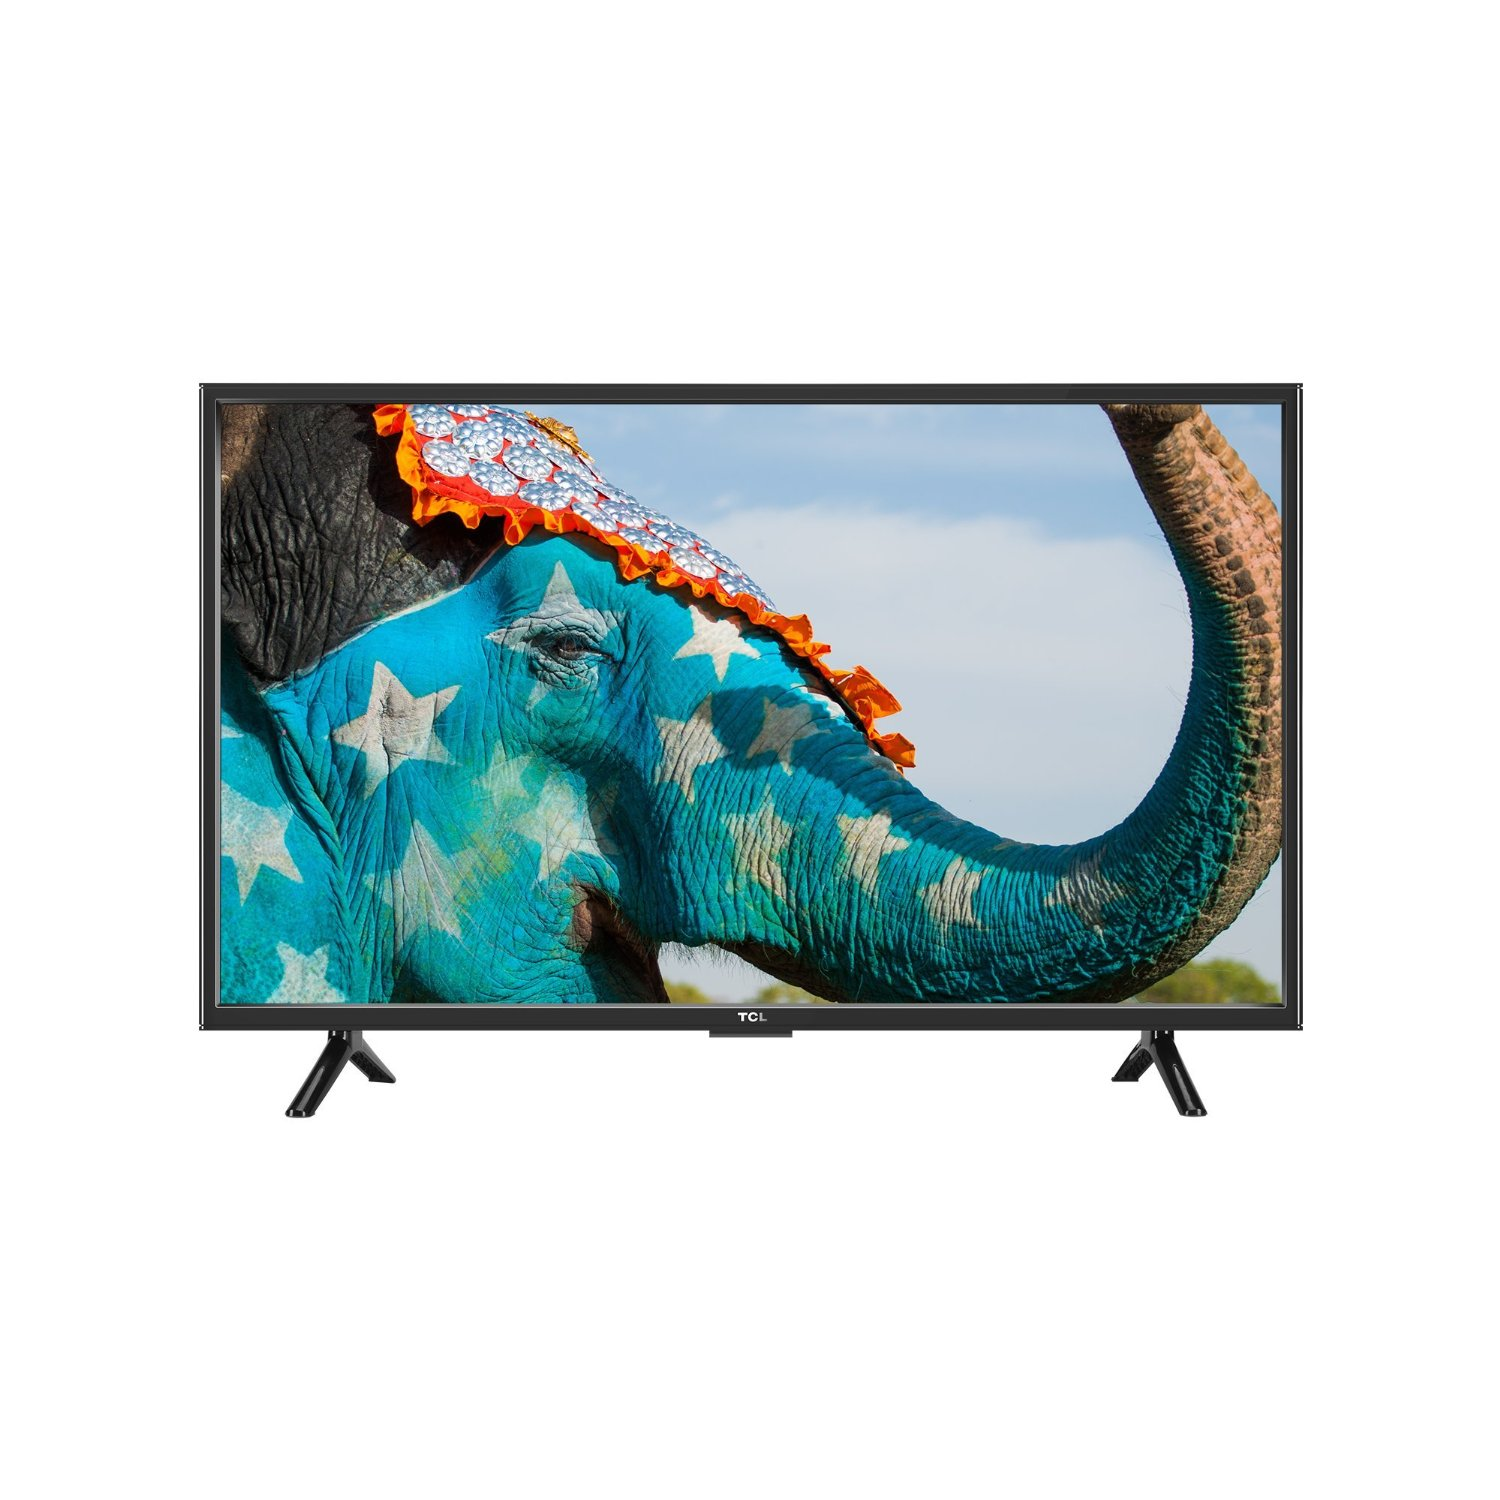 5aa6982dc TCL L32D2900 HD Ready LED TV Image. Write Your Review